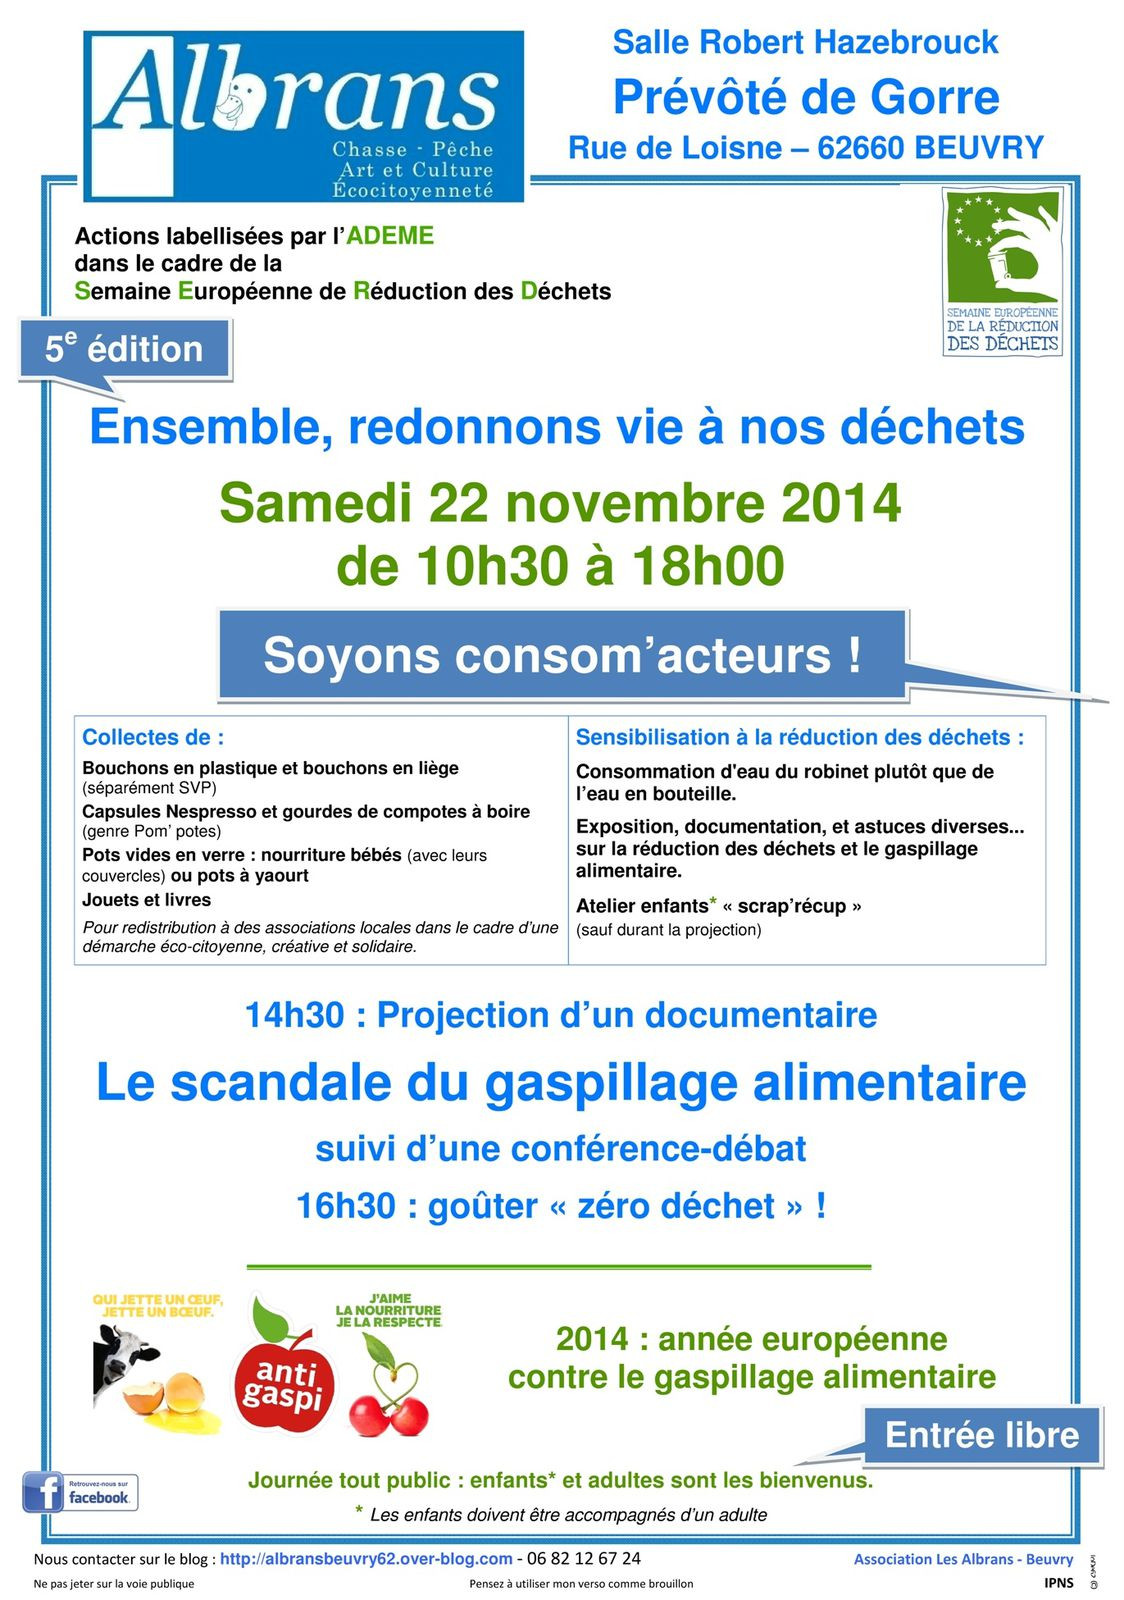 http://idata.over-blog.com/3/20/52/40/SERD-2014/Affiche-reduction-des-dechets-2014.jpg